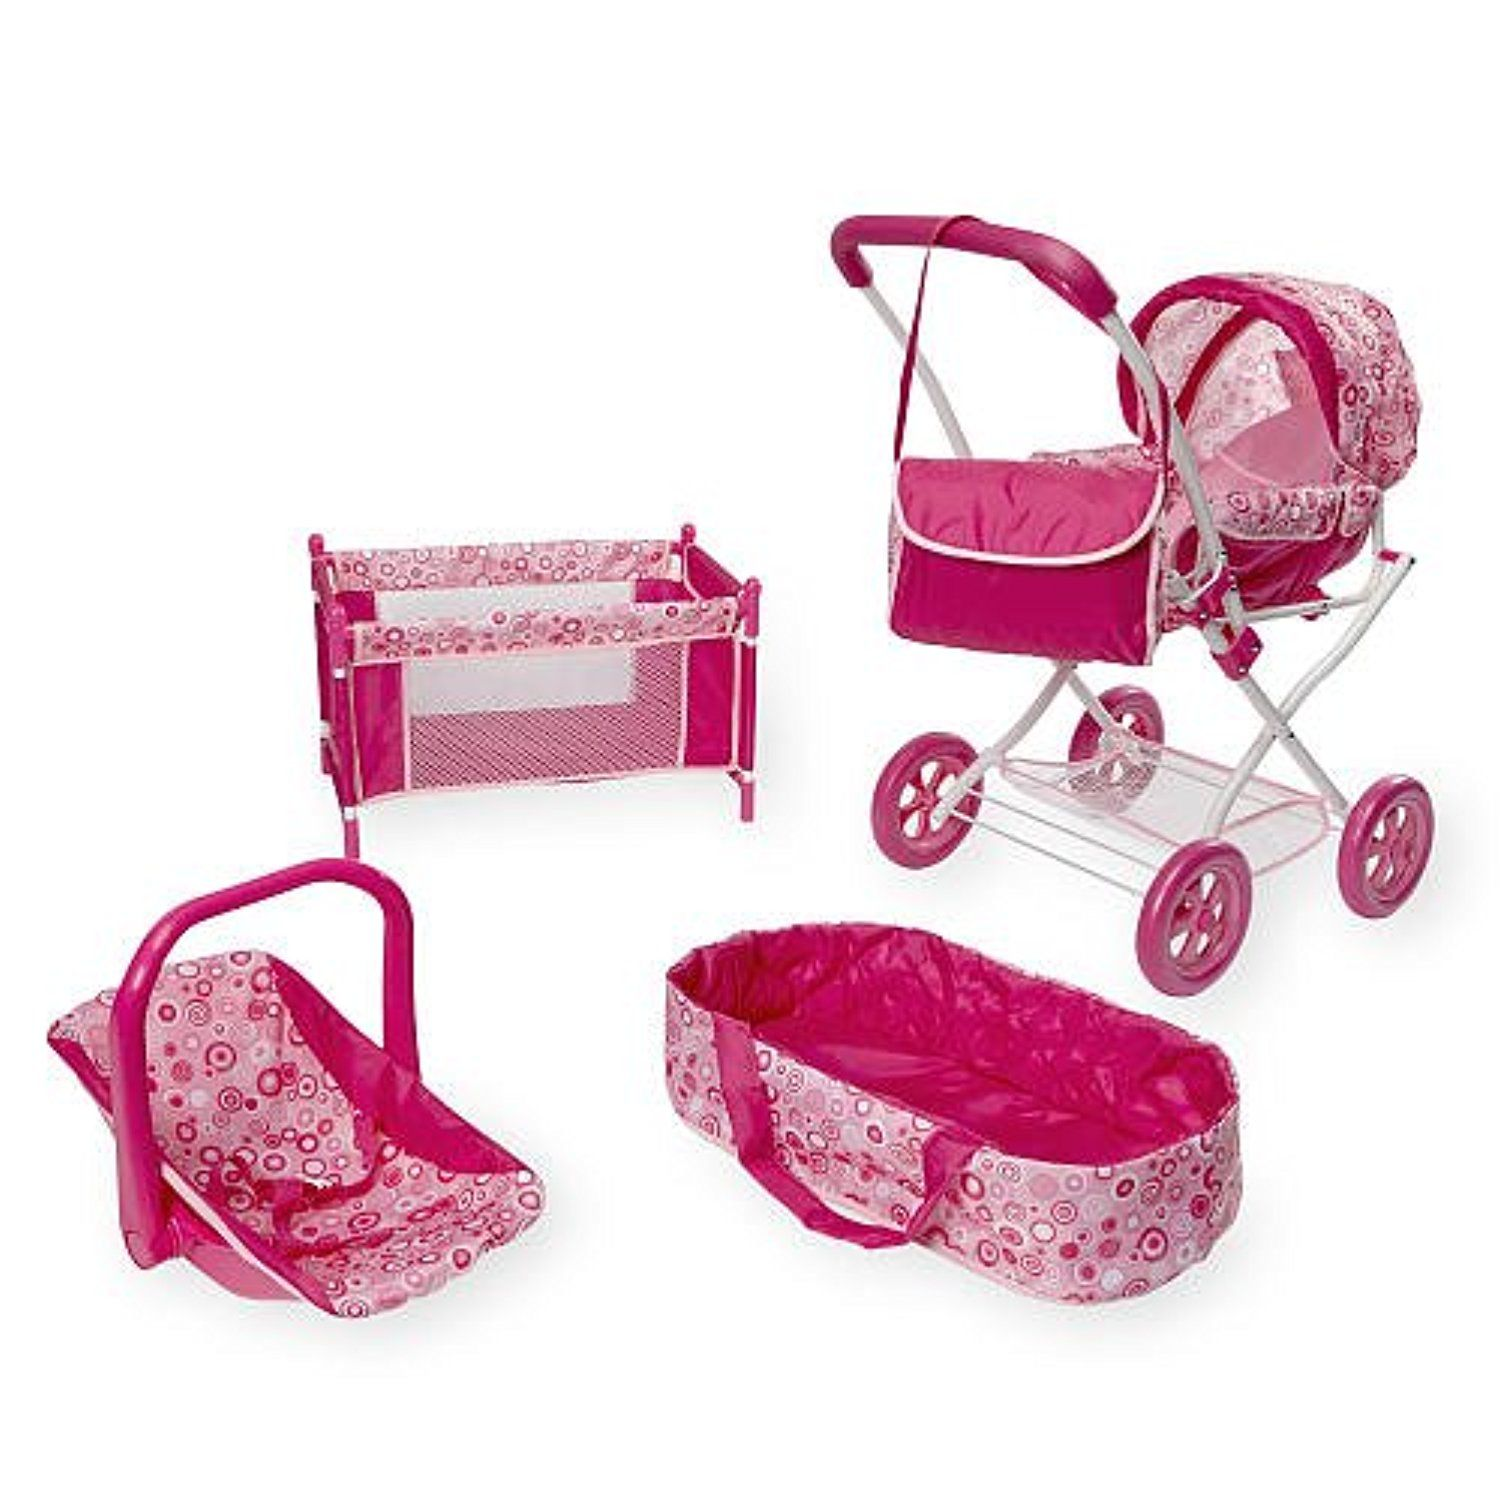 You & Me 5in1 Pram Nursery Set Awesome products